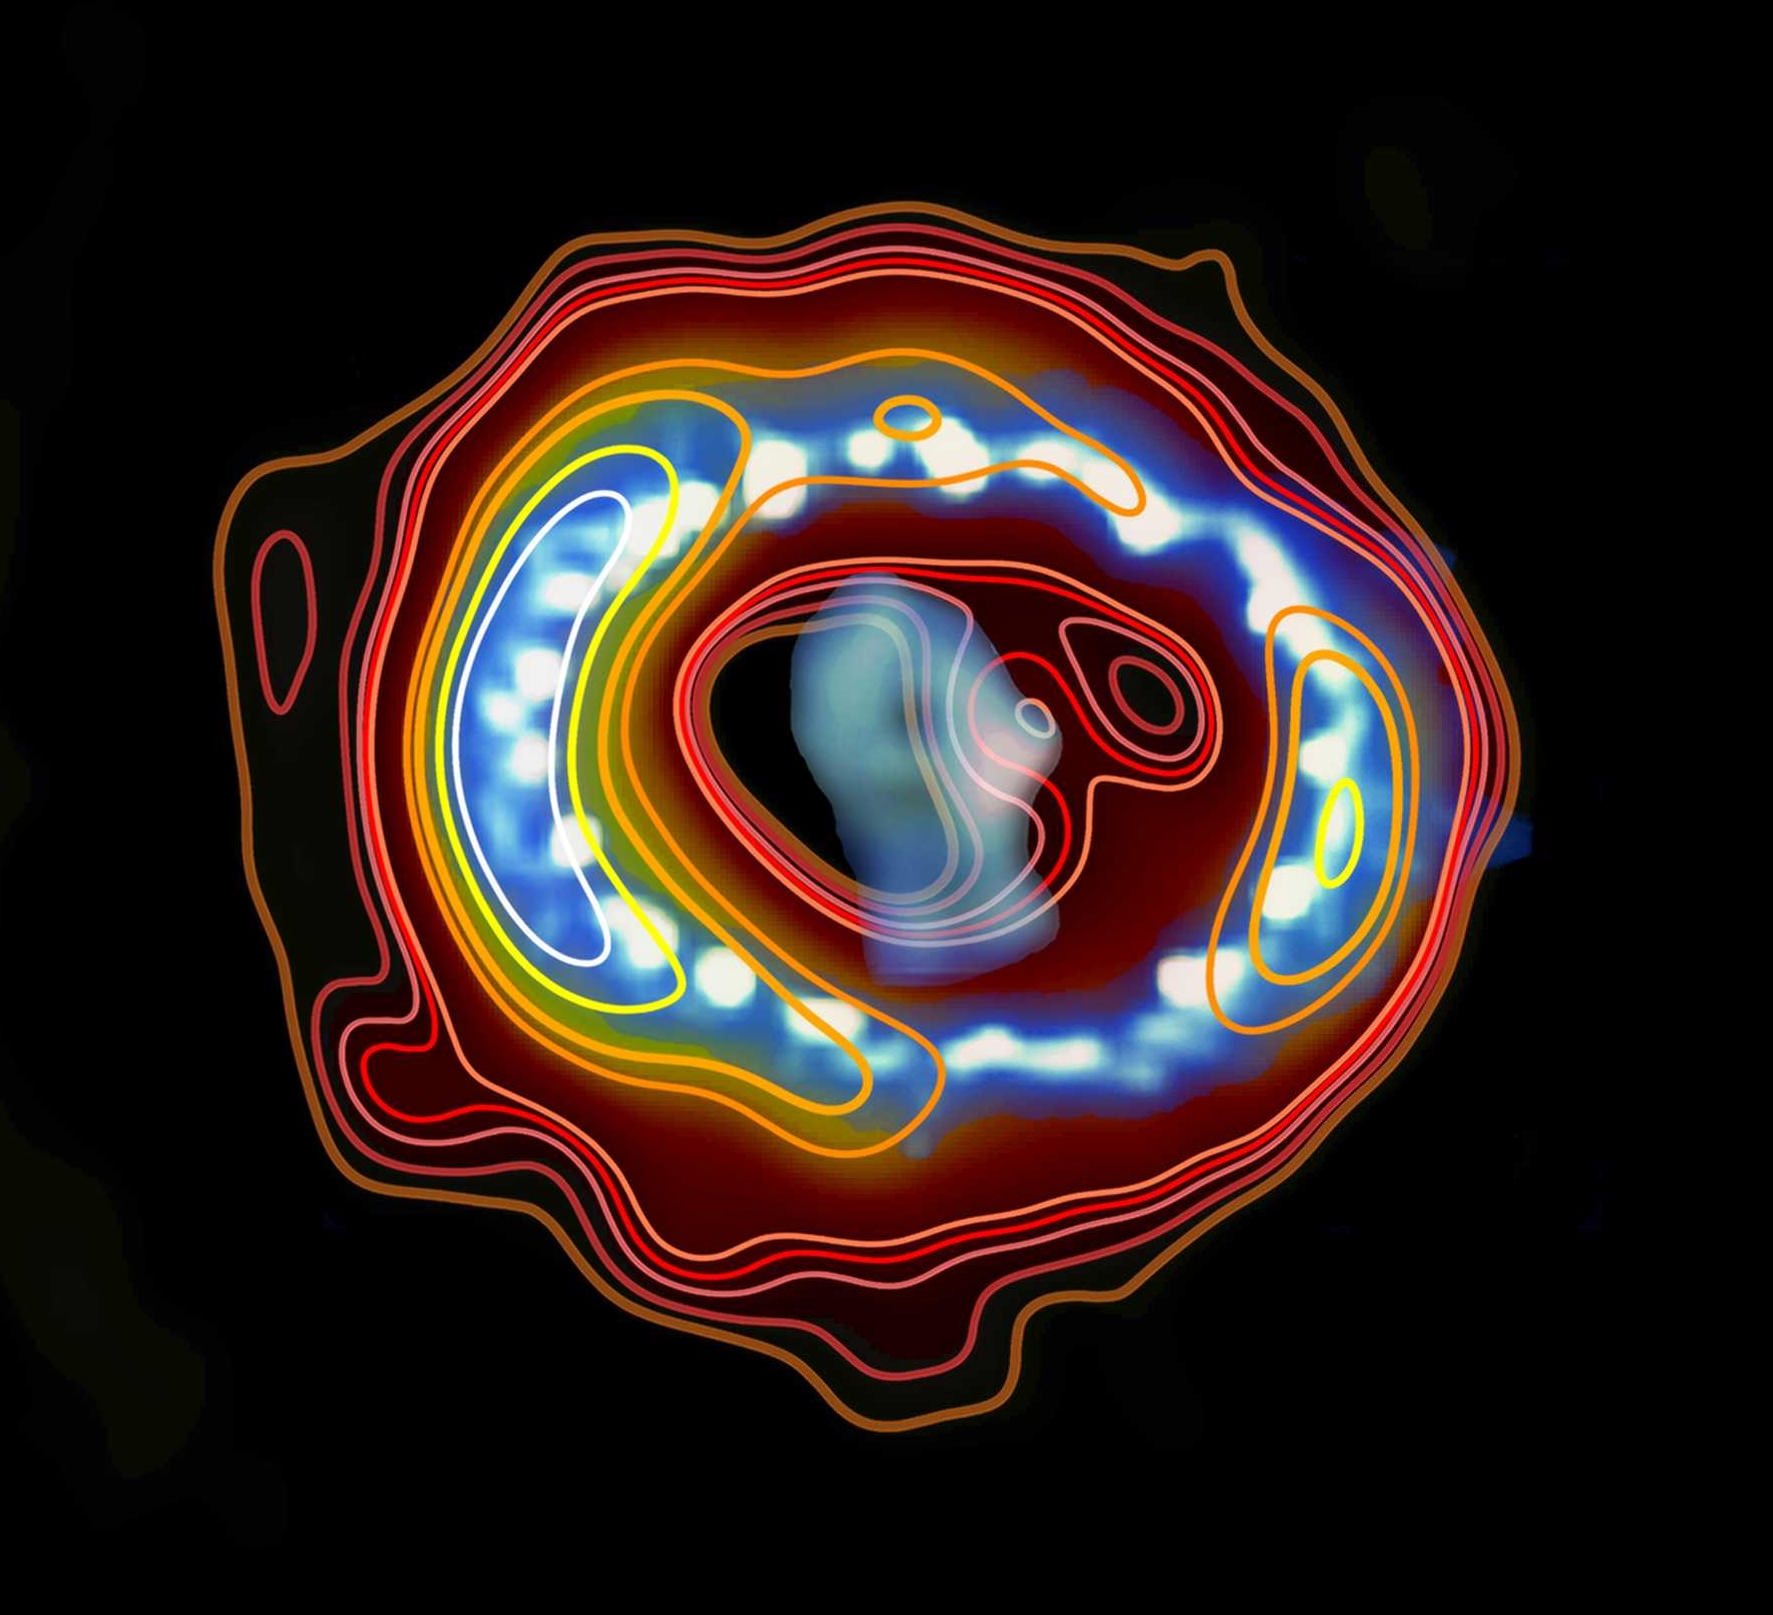 An overlay of radio emission (contours) and a Hubble space telescope image of Supernova 1987A. Credit: ICRAR (radio contours) and Hubble (image.)